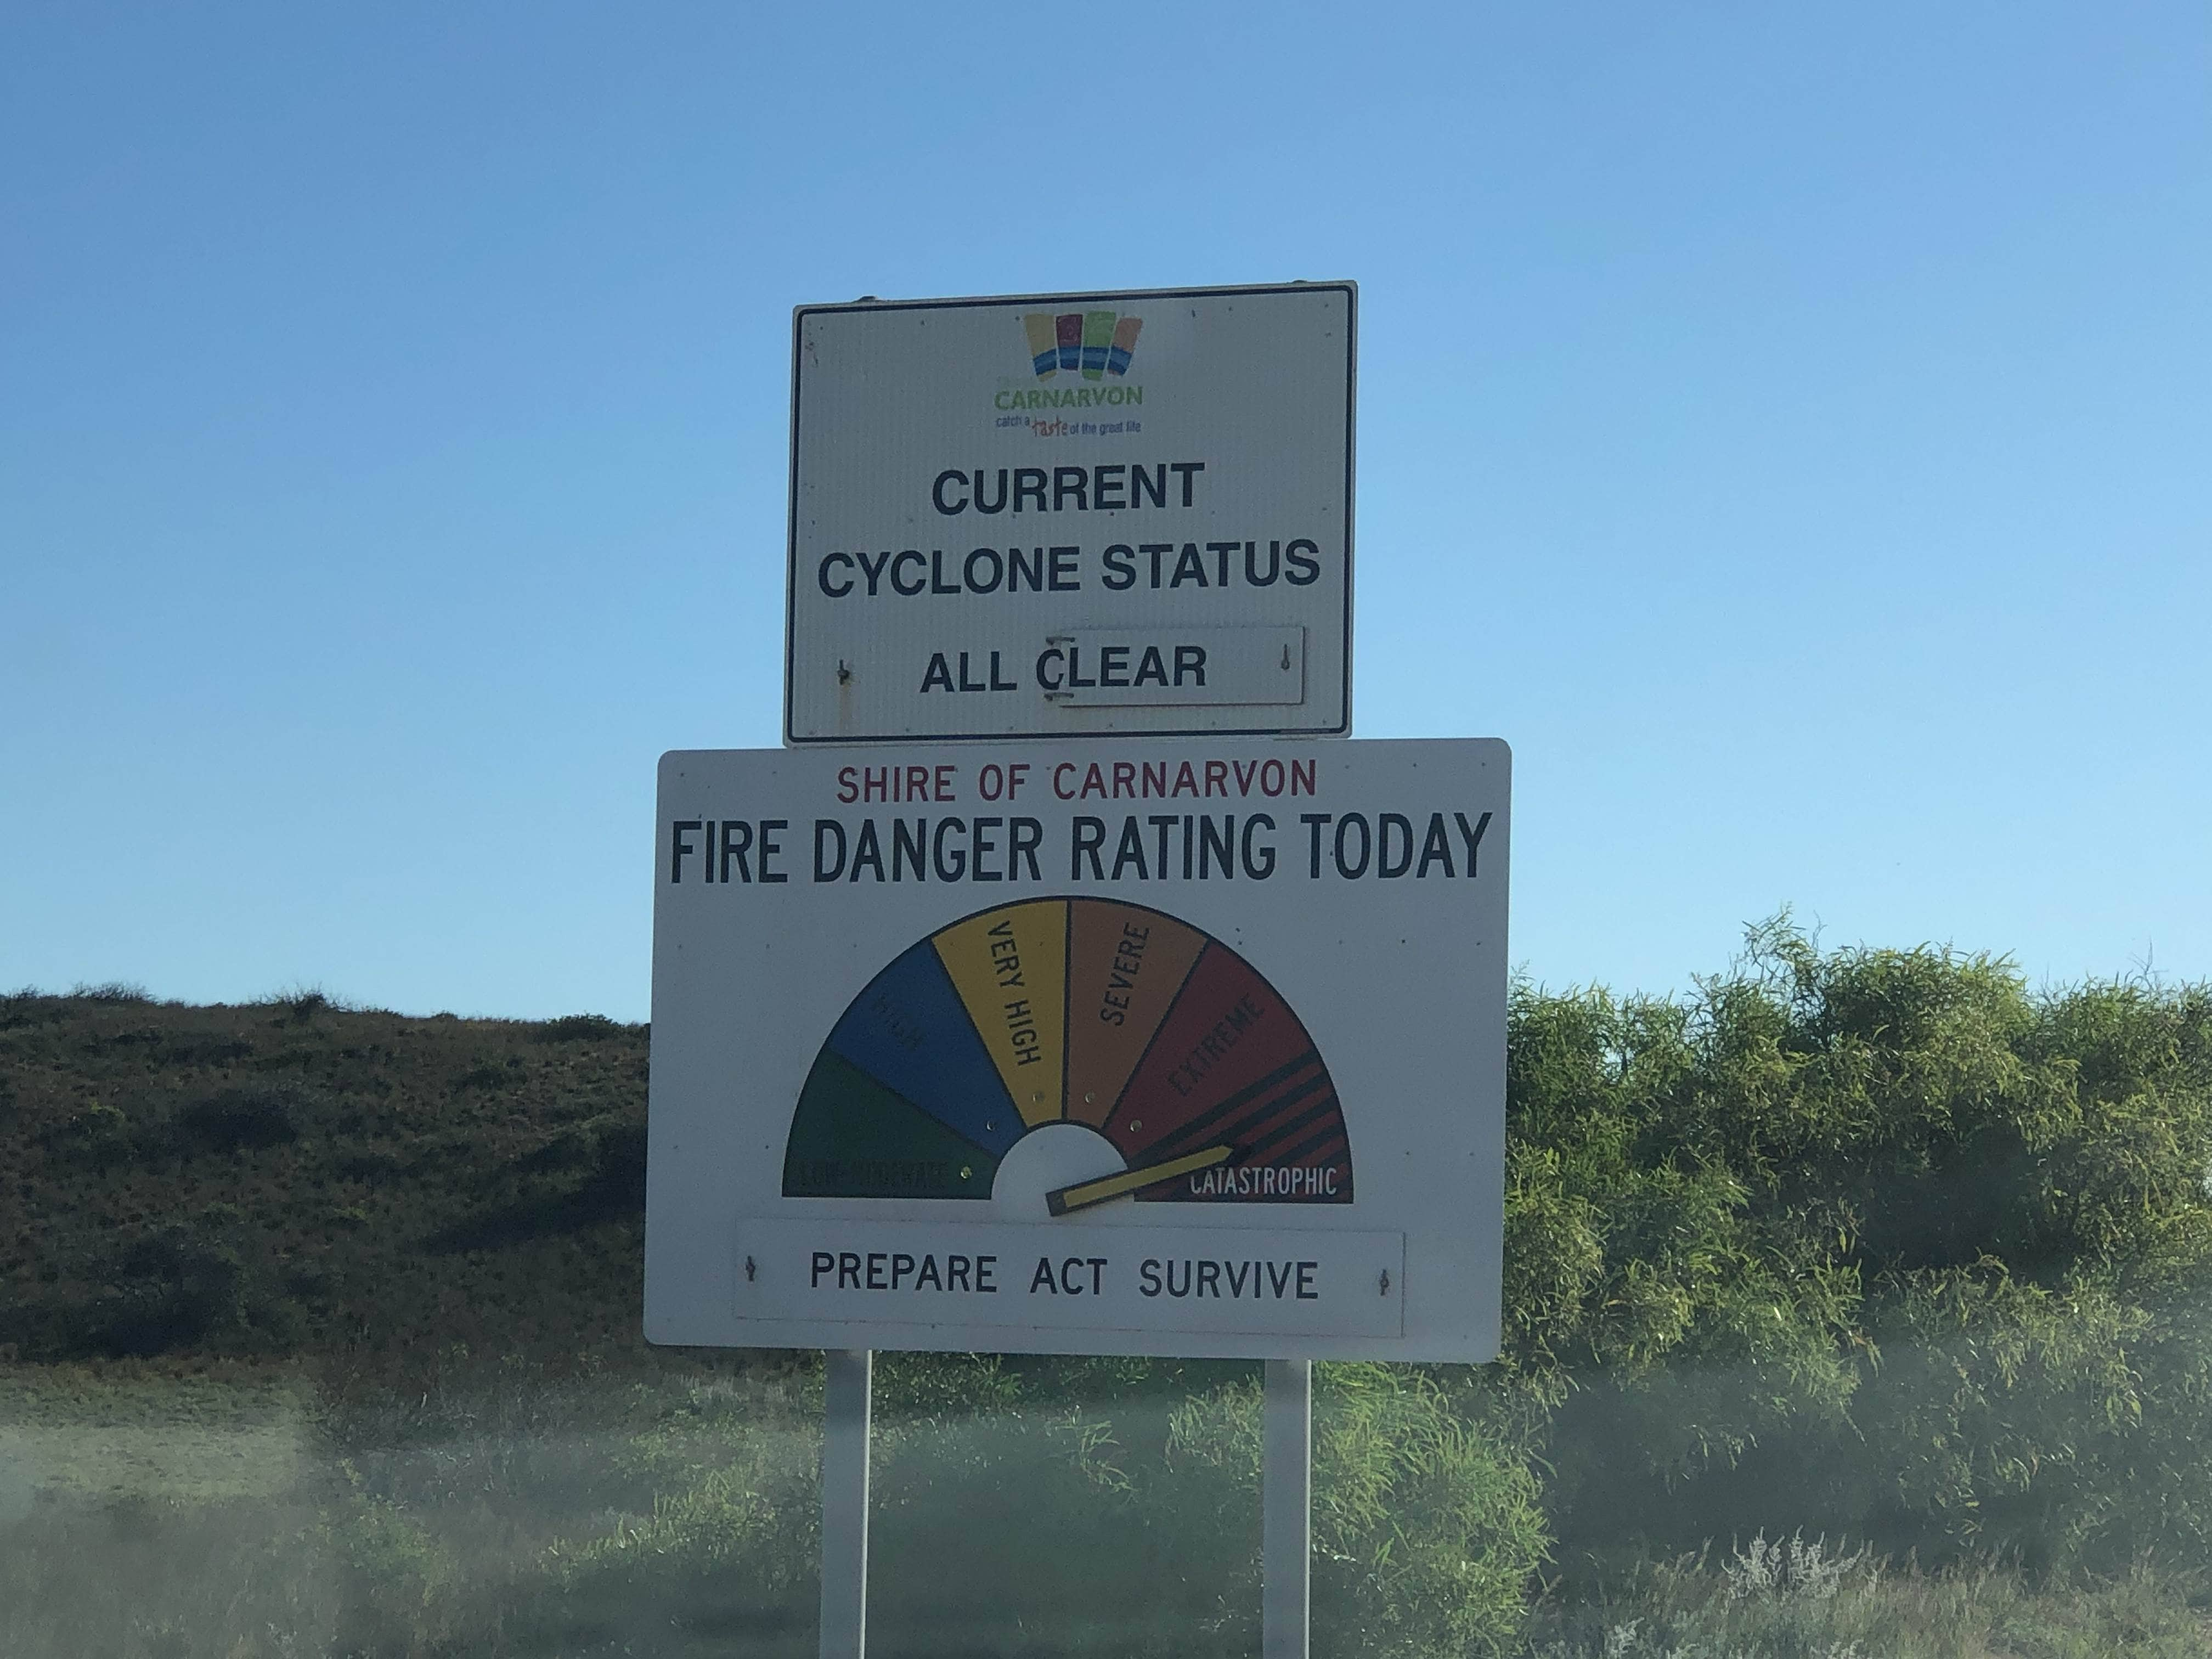 Catastrophic fire rating